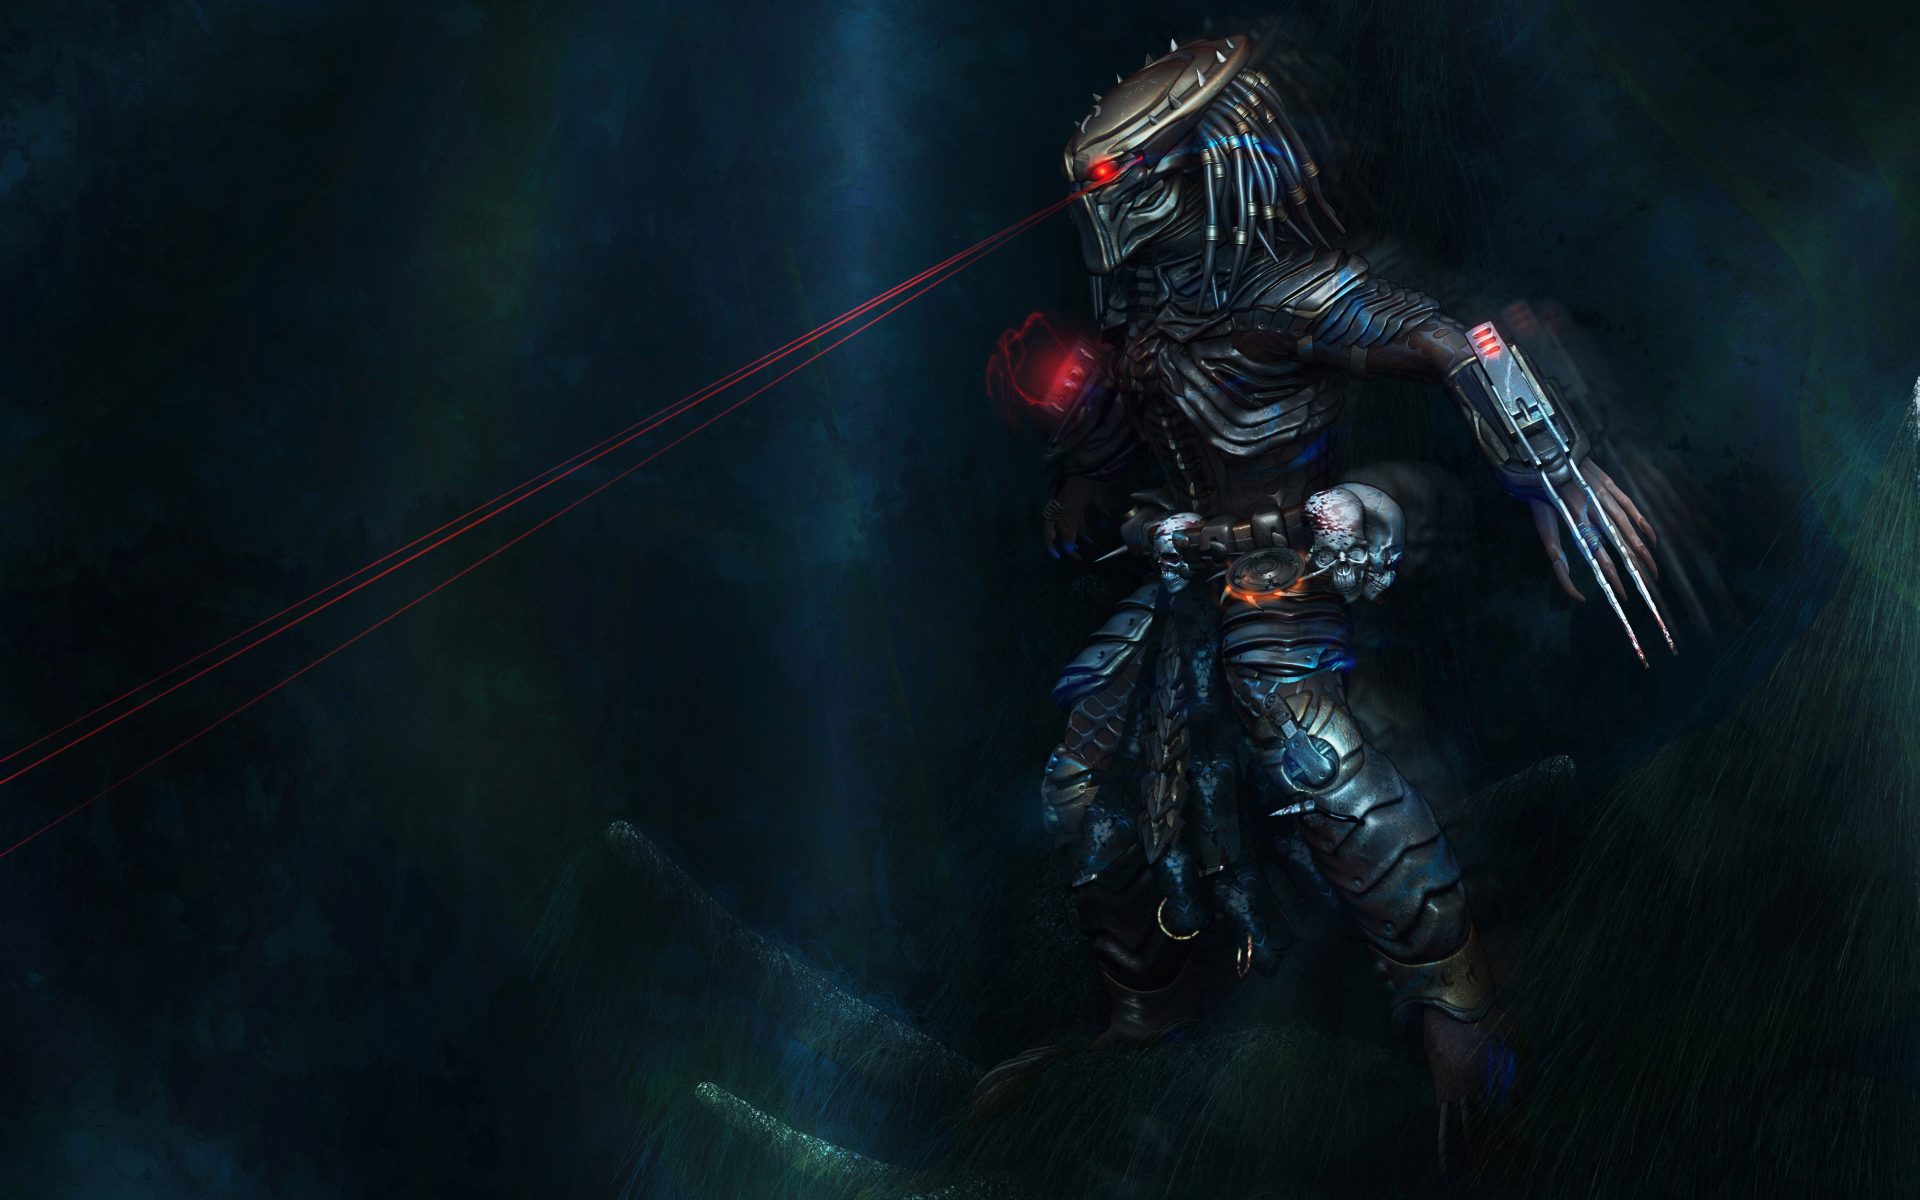 Predator Background Wallpapers WIN10 THEMES 1920x1200